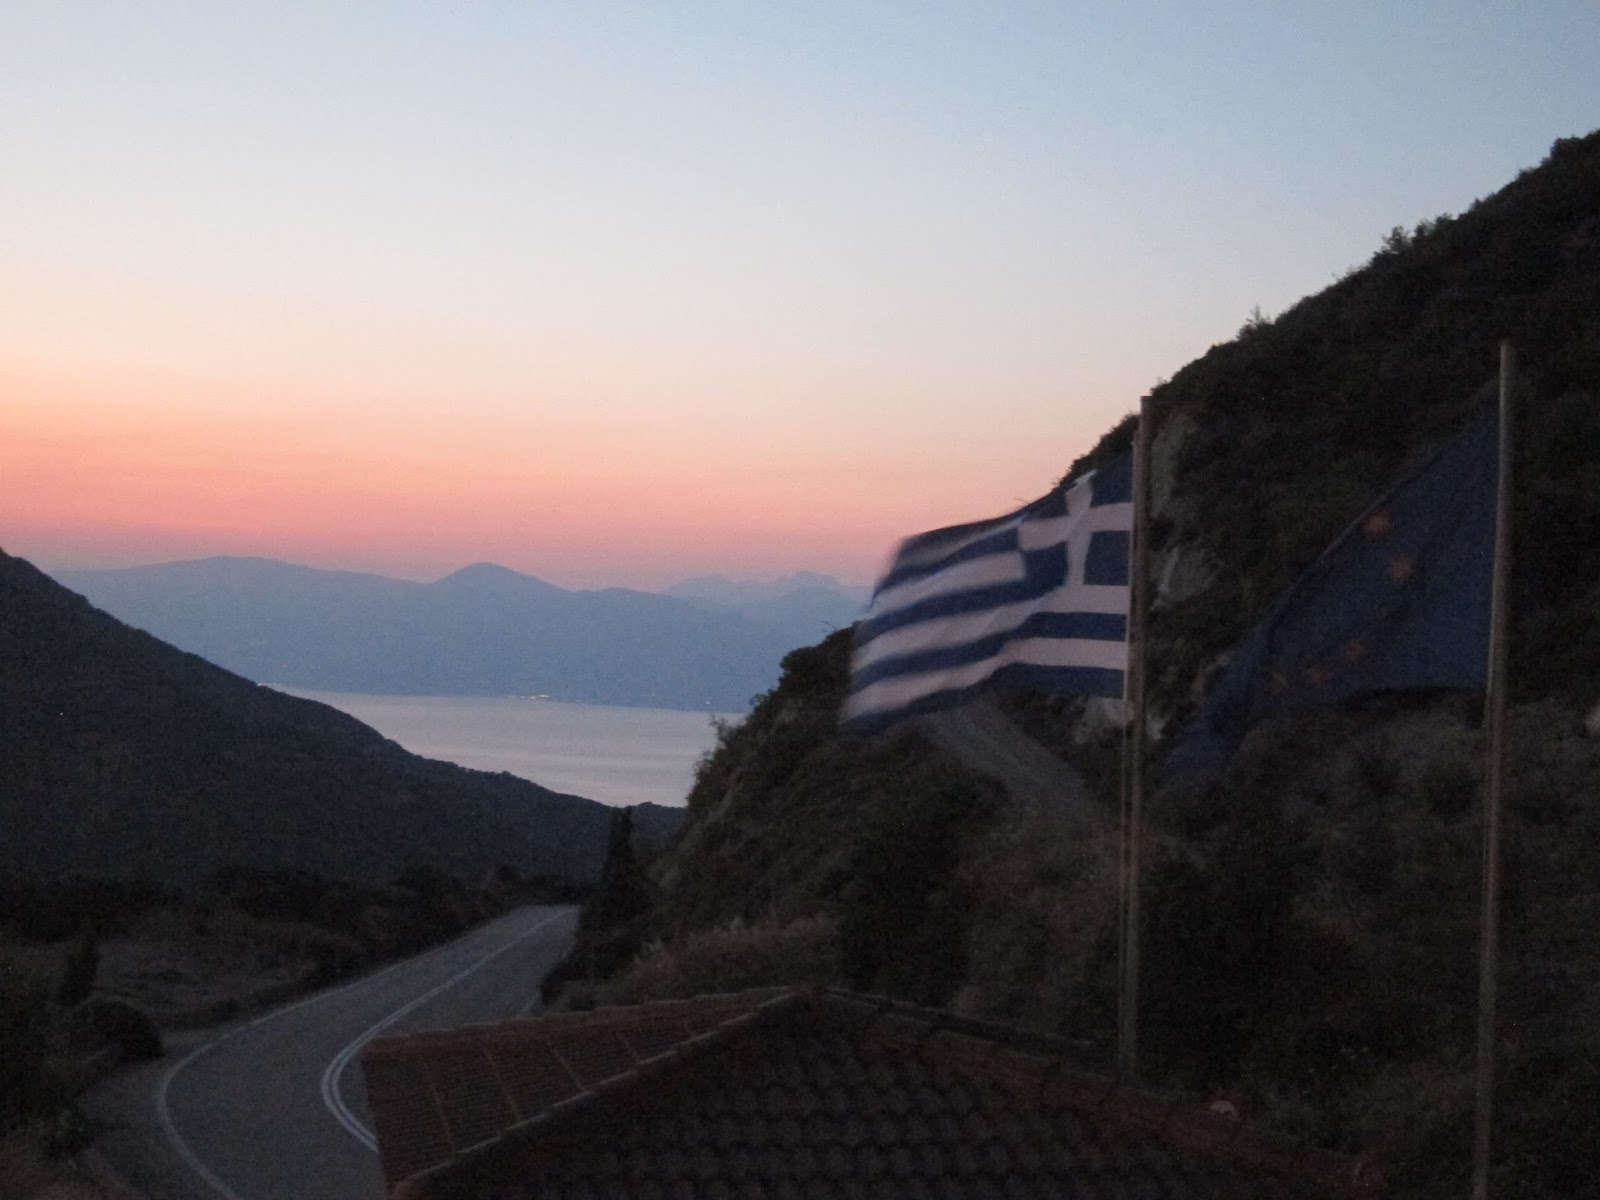 The Gray Report: Go to Greece! No worries for tourists, and